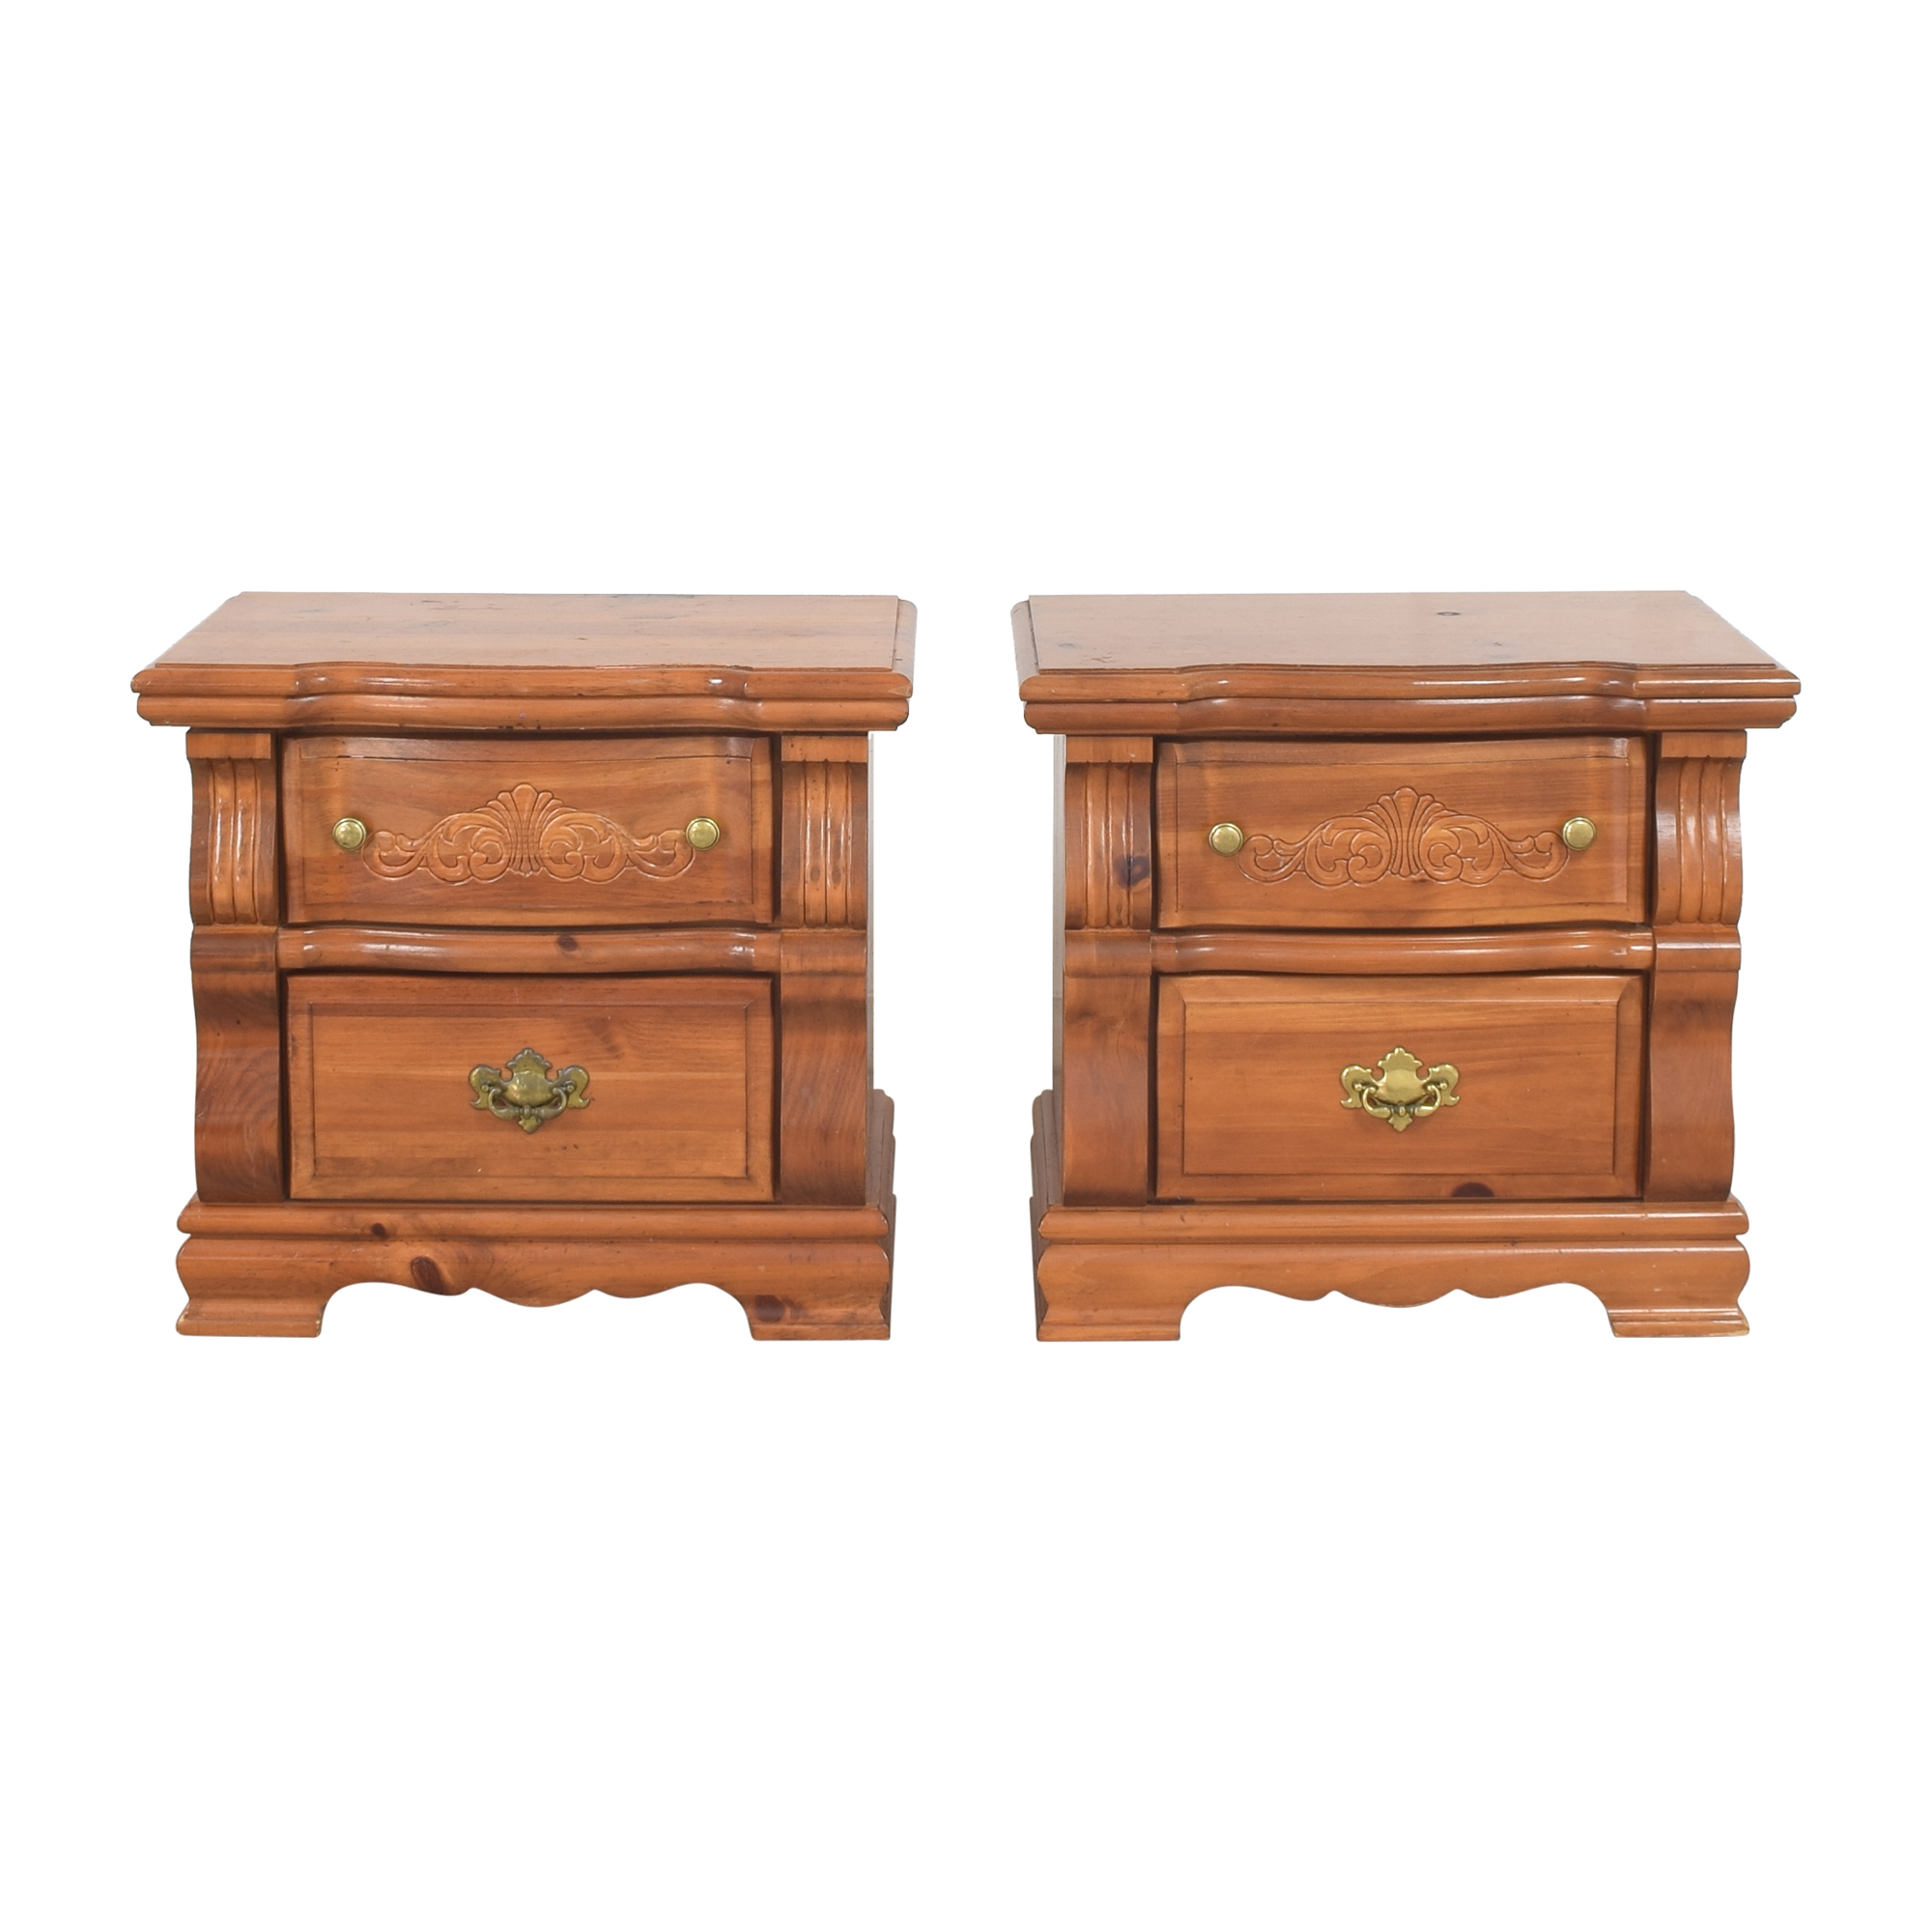 Vaughan-Bassett Vaughan-Bassett Two Drawer Nightstands nyc